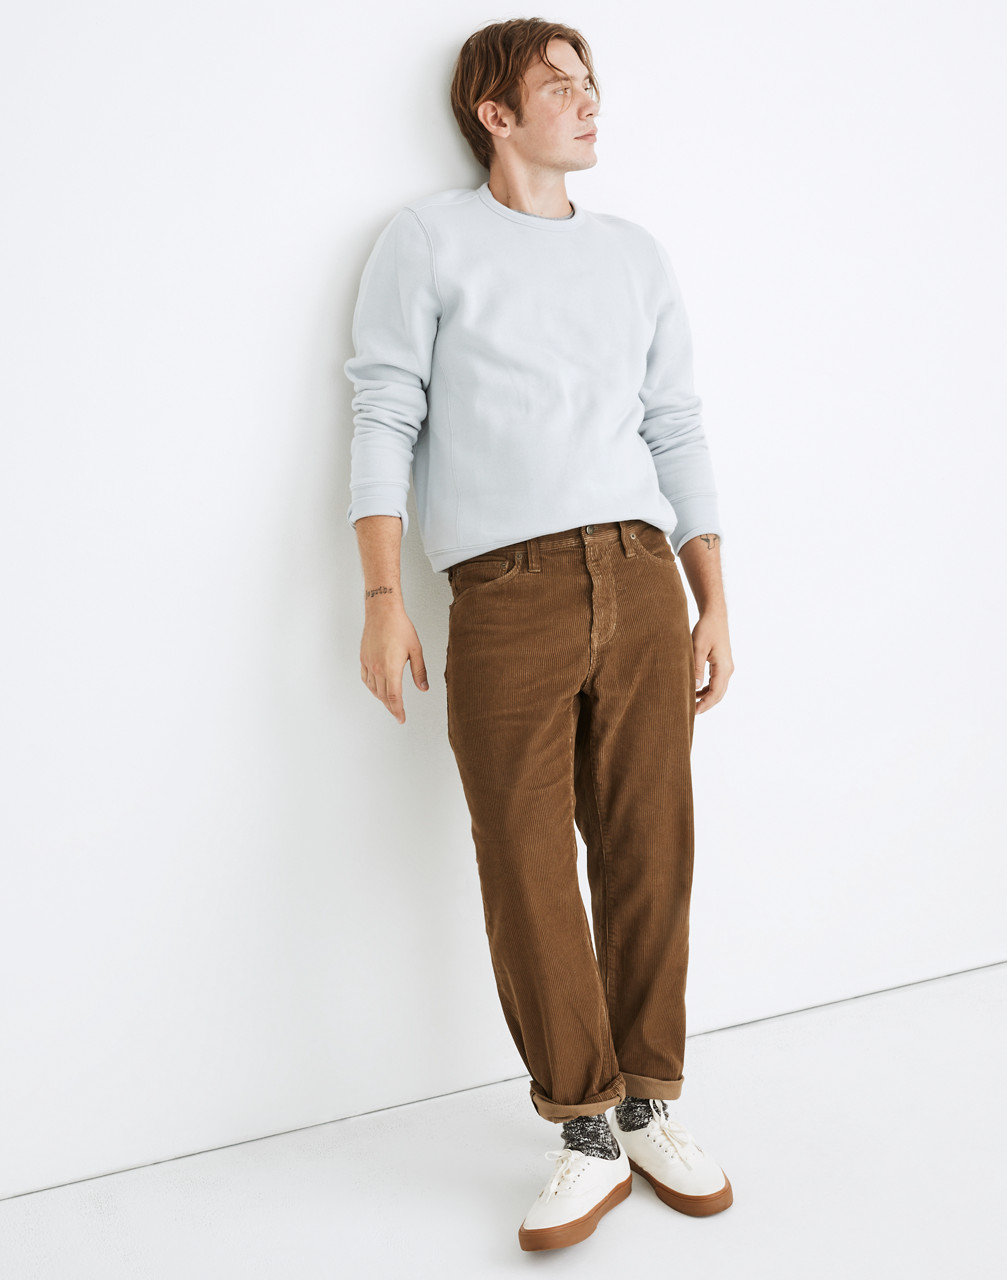 1930s Mens High Waisted Pants, Wide Leg Trousers Relaxed Straight Corduroy Jeans $99.50 AT vintagedancer.com